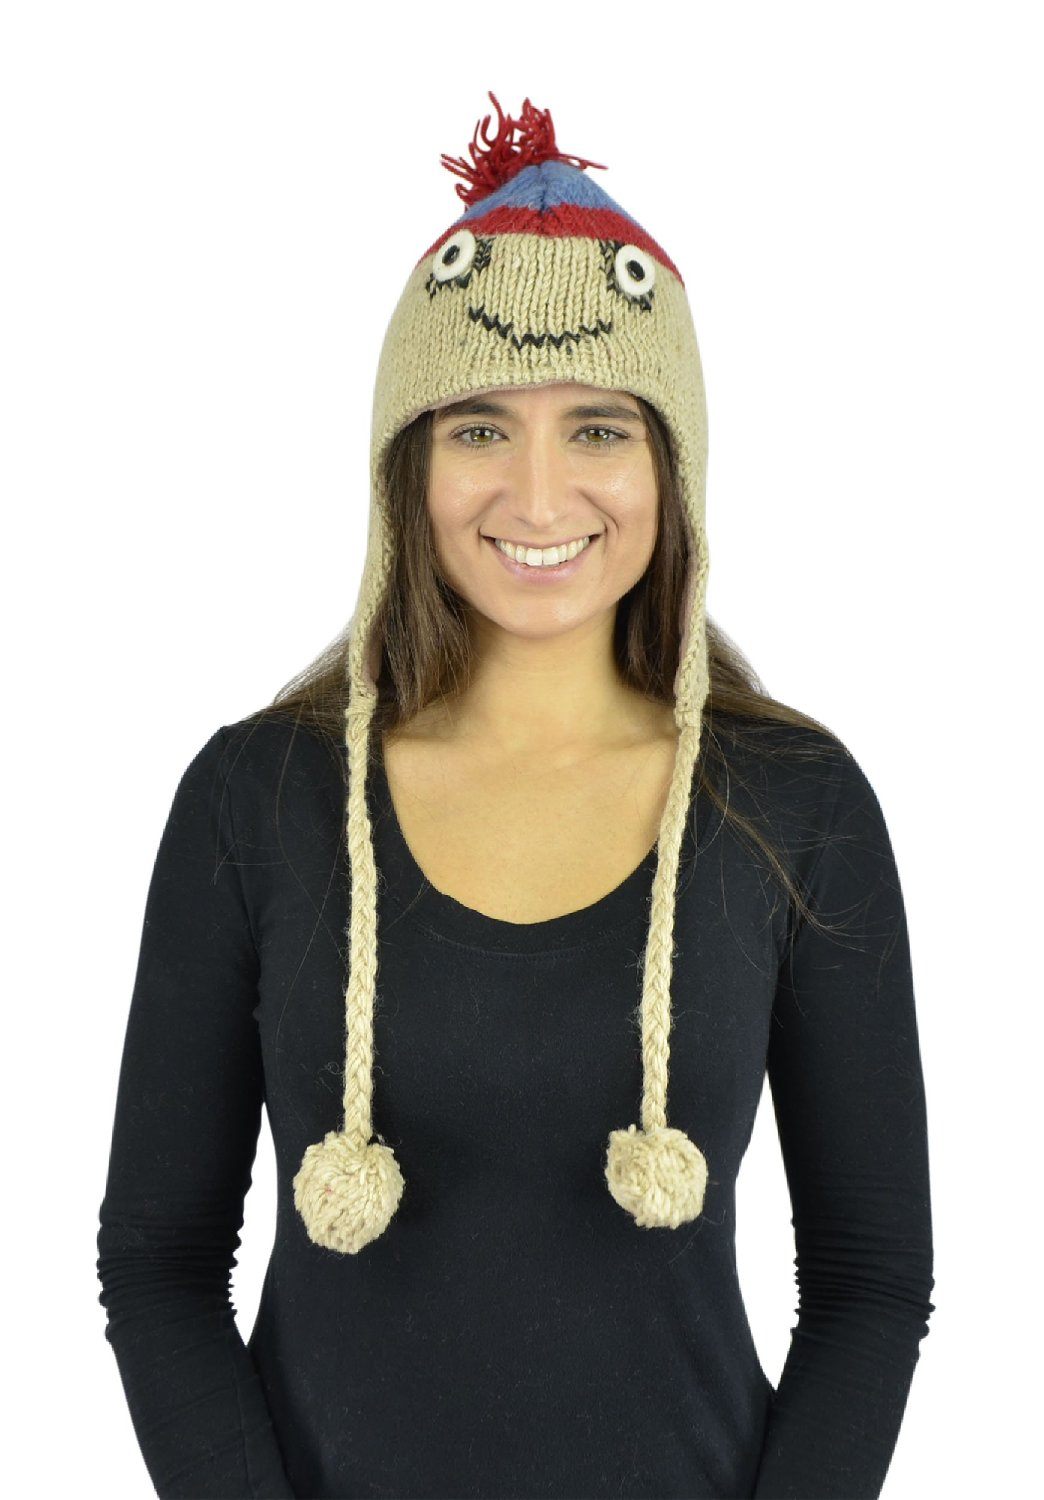 Belle Donne - Unisex Winter Knit Atan Animal Hats With Pom Pom - Tan